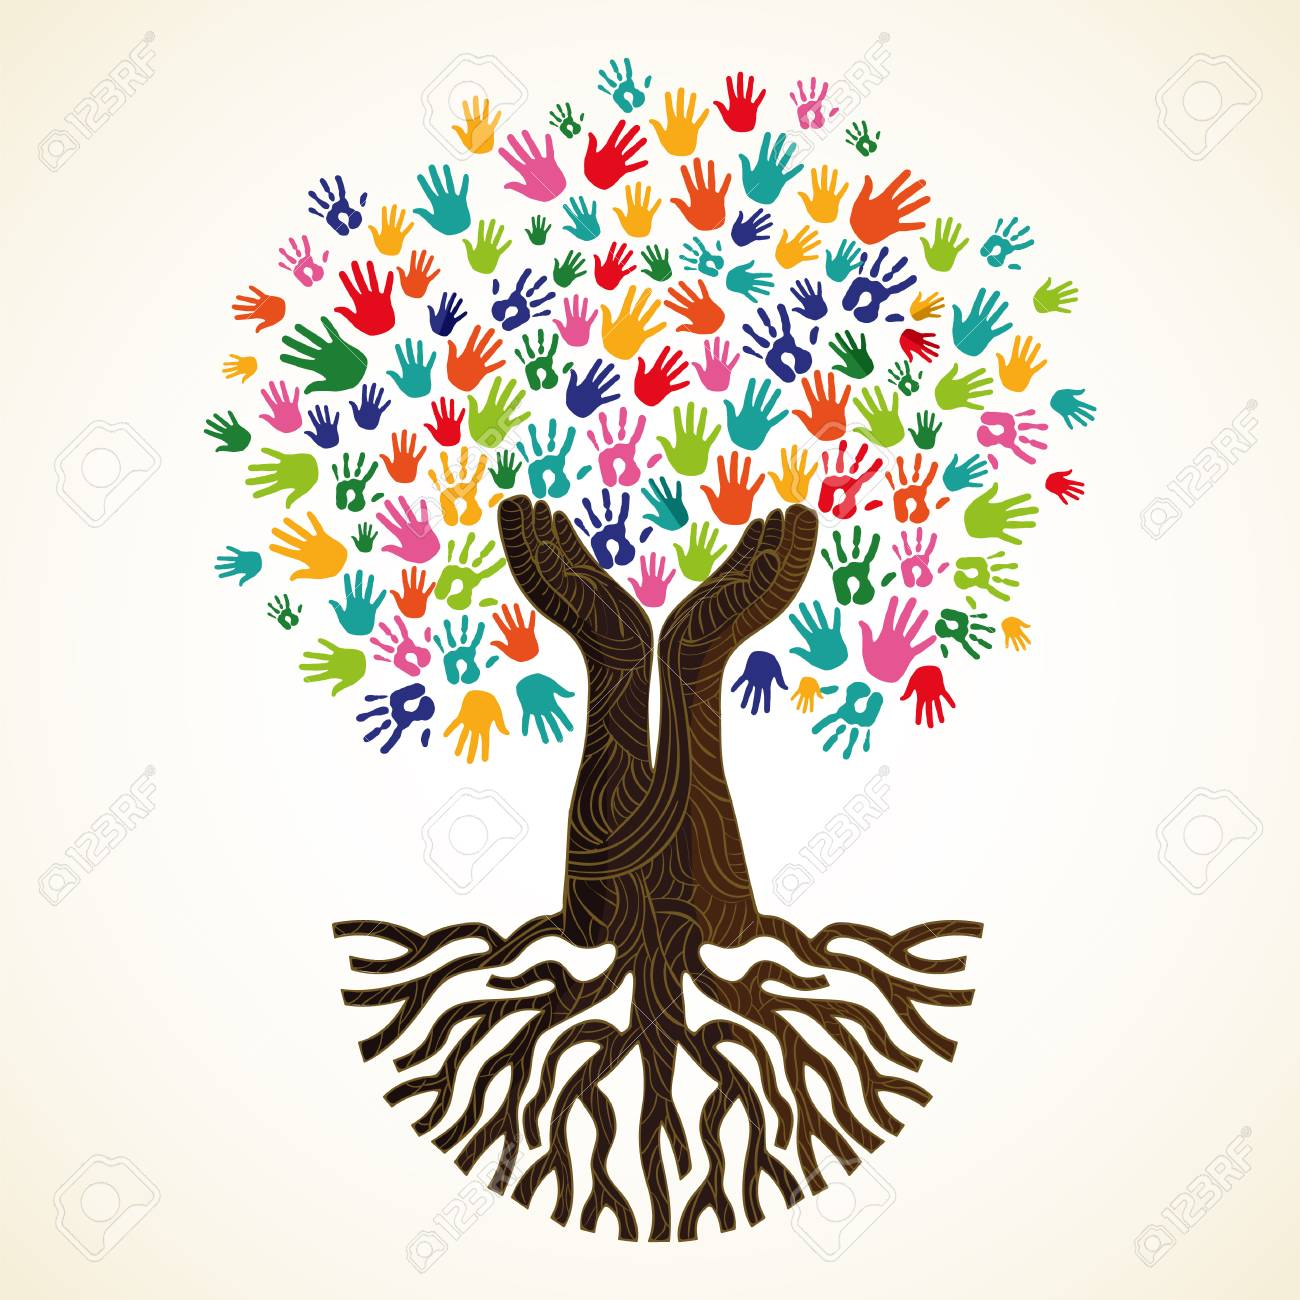 Tree symbol with colorful human hands. Concept illustration for organization help, environment project or social work. vector. - 103830638